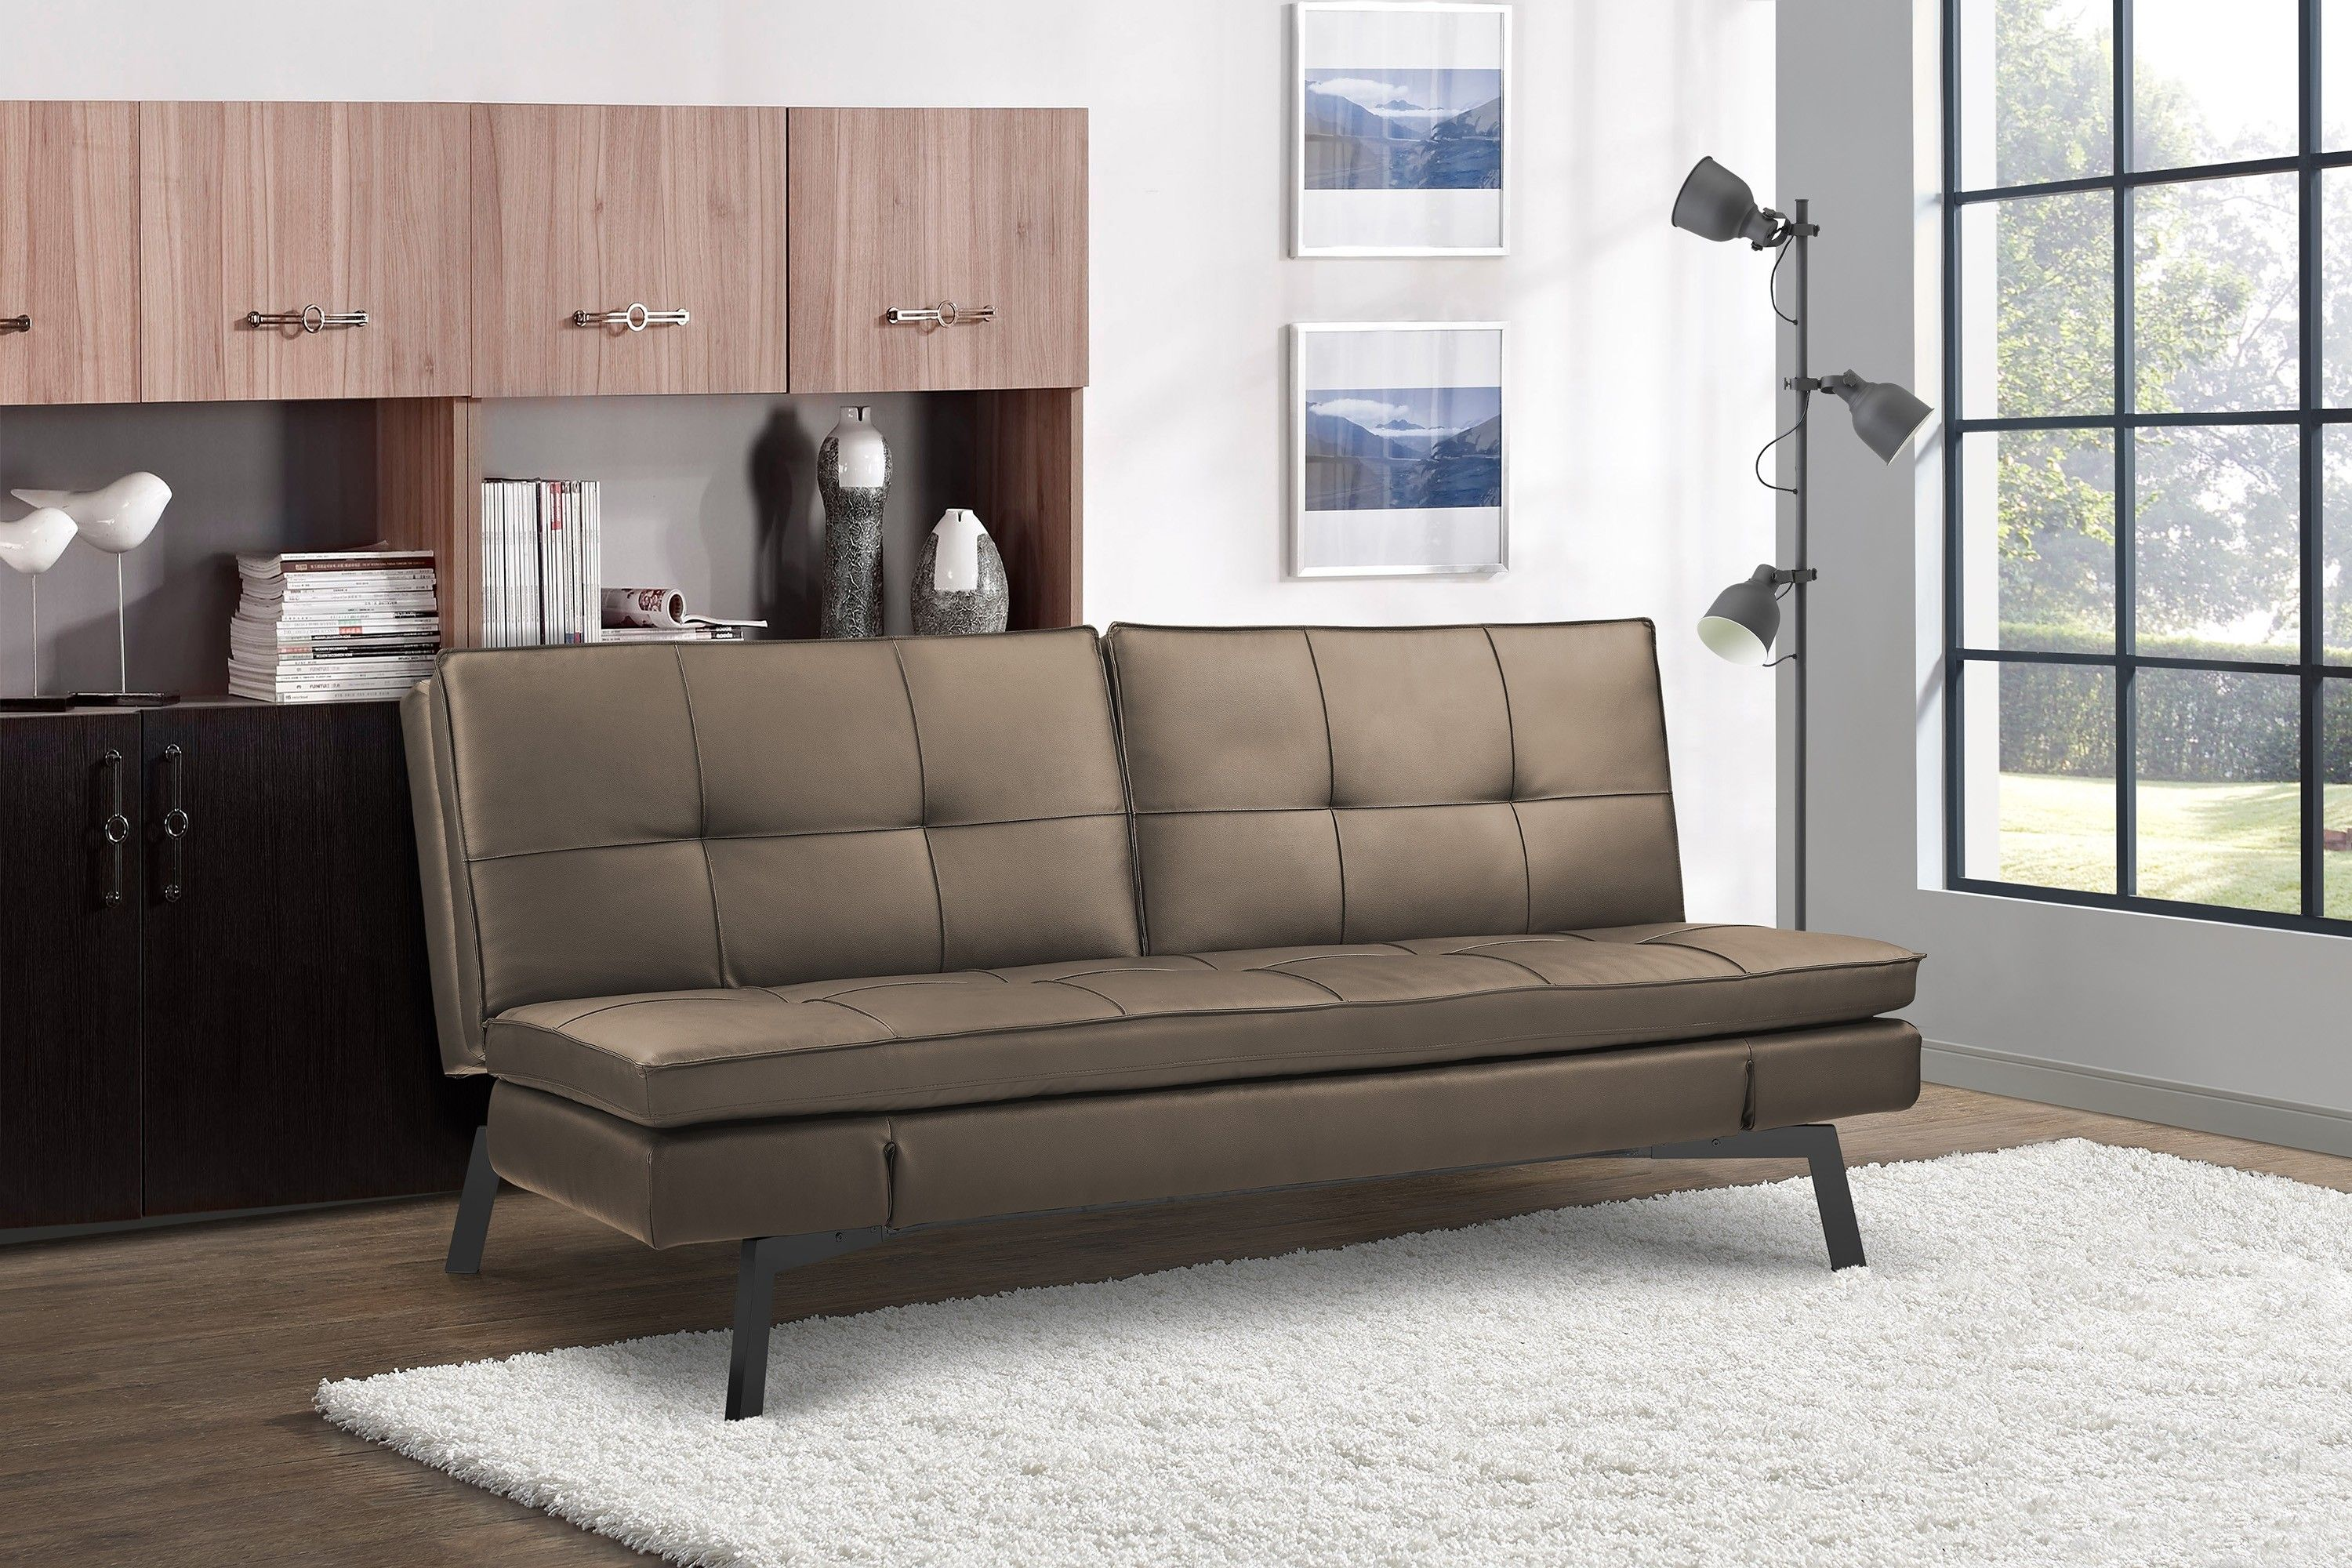 Surprising Pin By The Futon Shop On Futons Futon Shop Futon Sofa Gmtry Best Dining Table And Chair Ideas Images Gmtryco